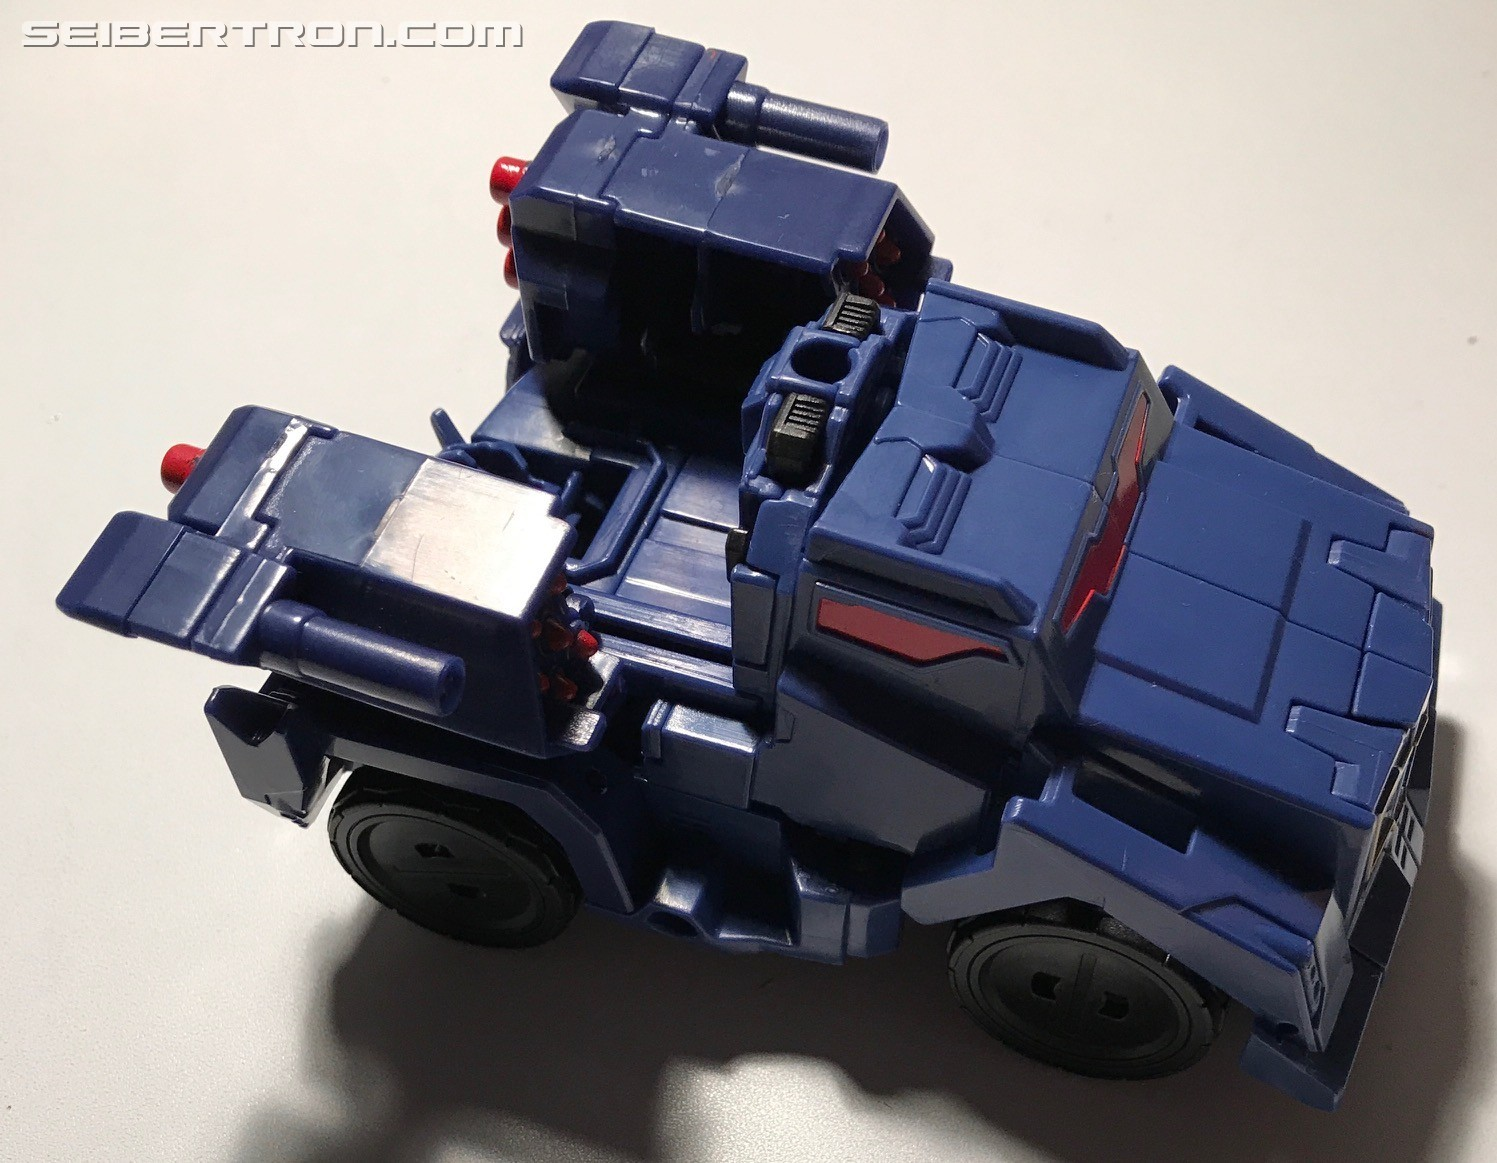 Transformers News: Pictorial Review of Transformers: Robots in Disguise Combiner Force Activator Soundwave